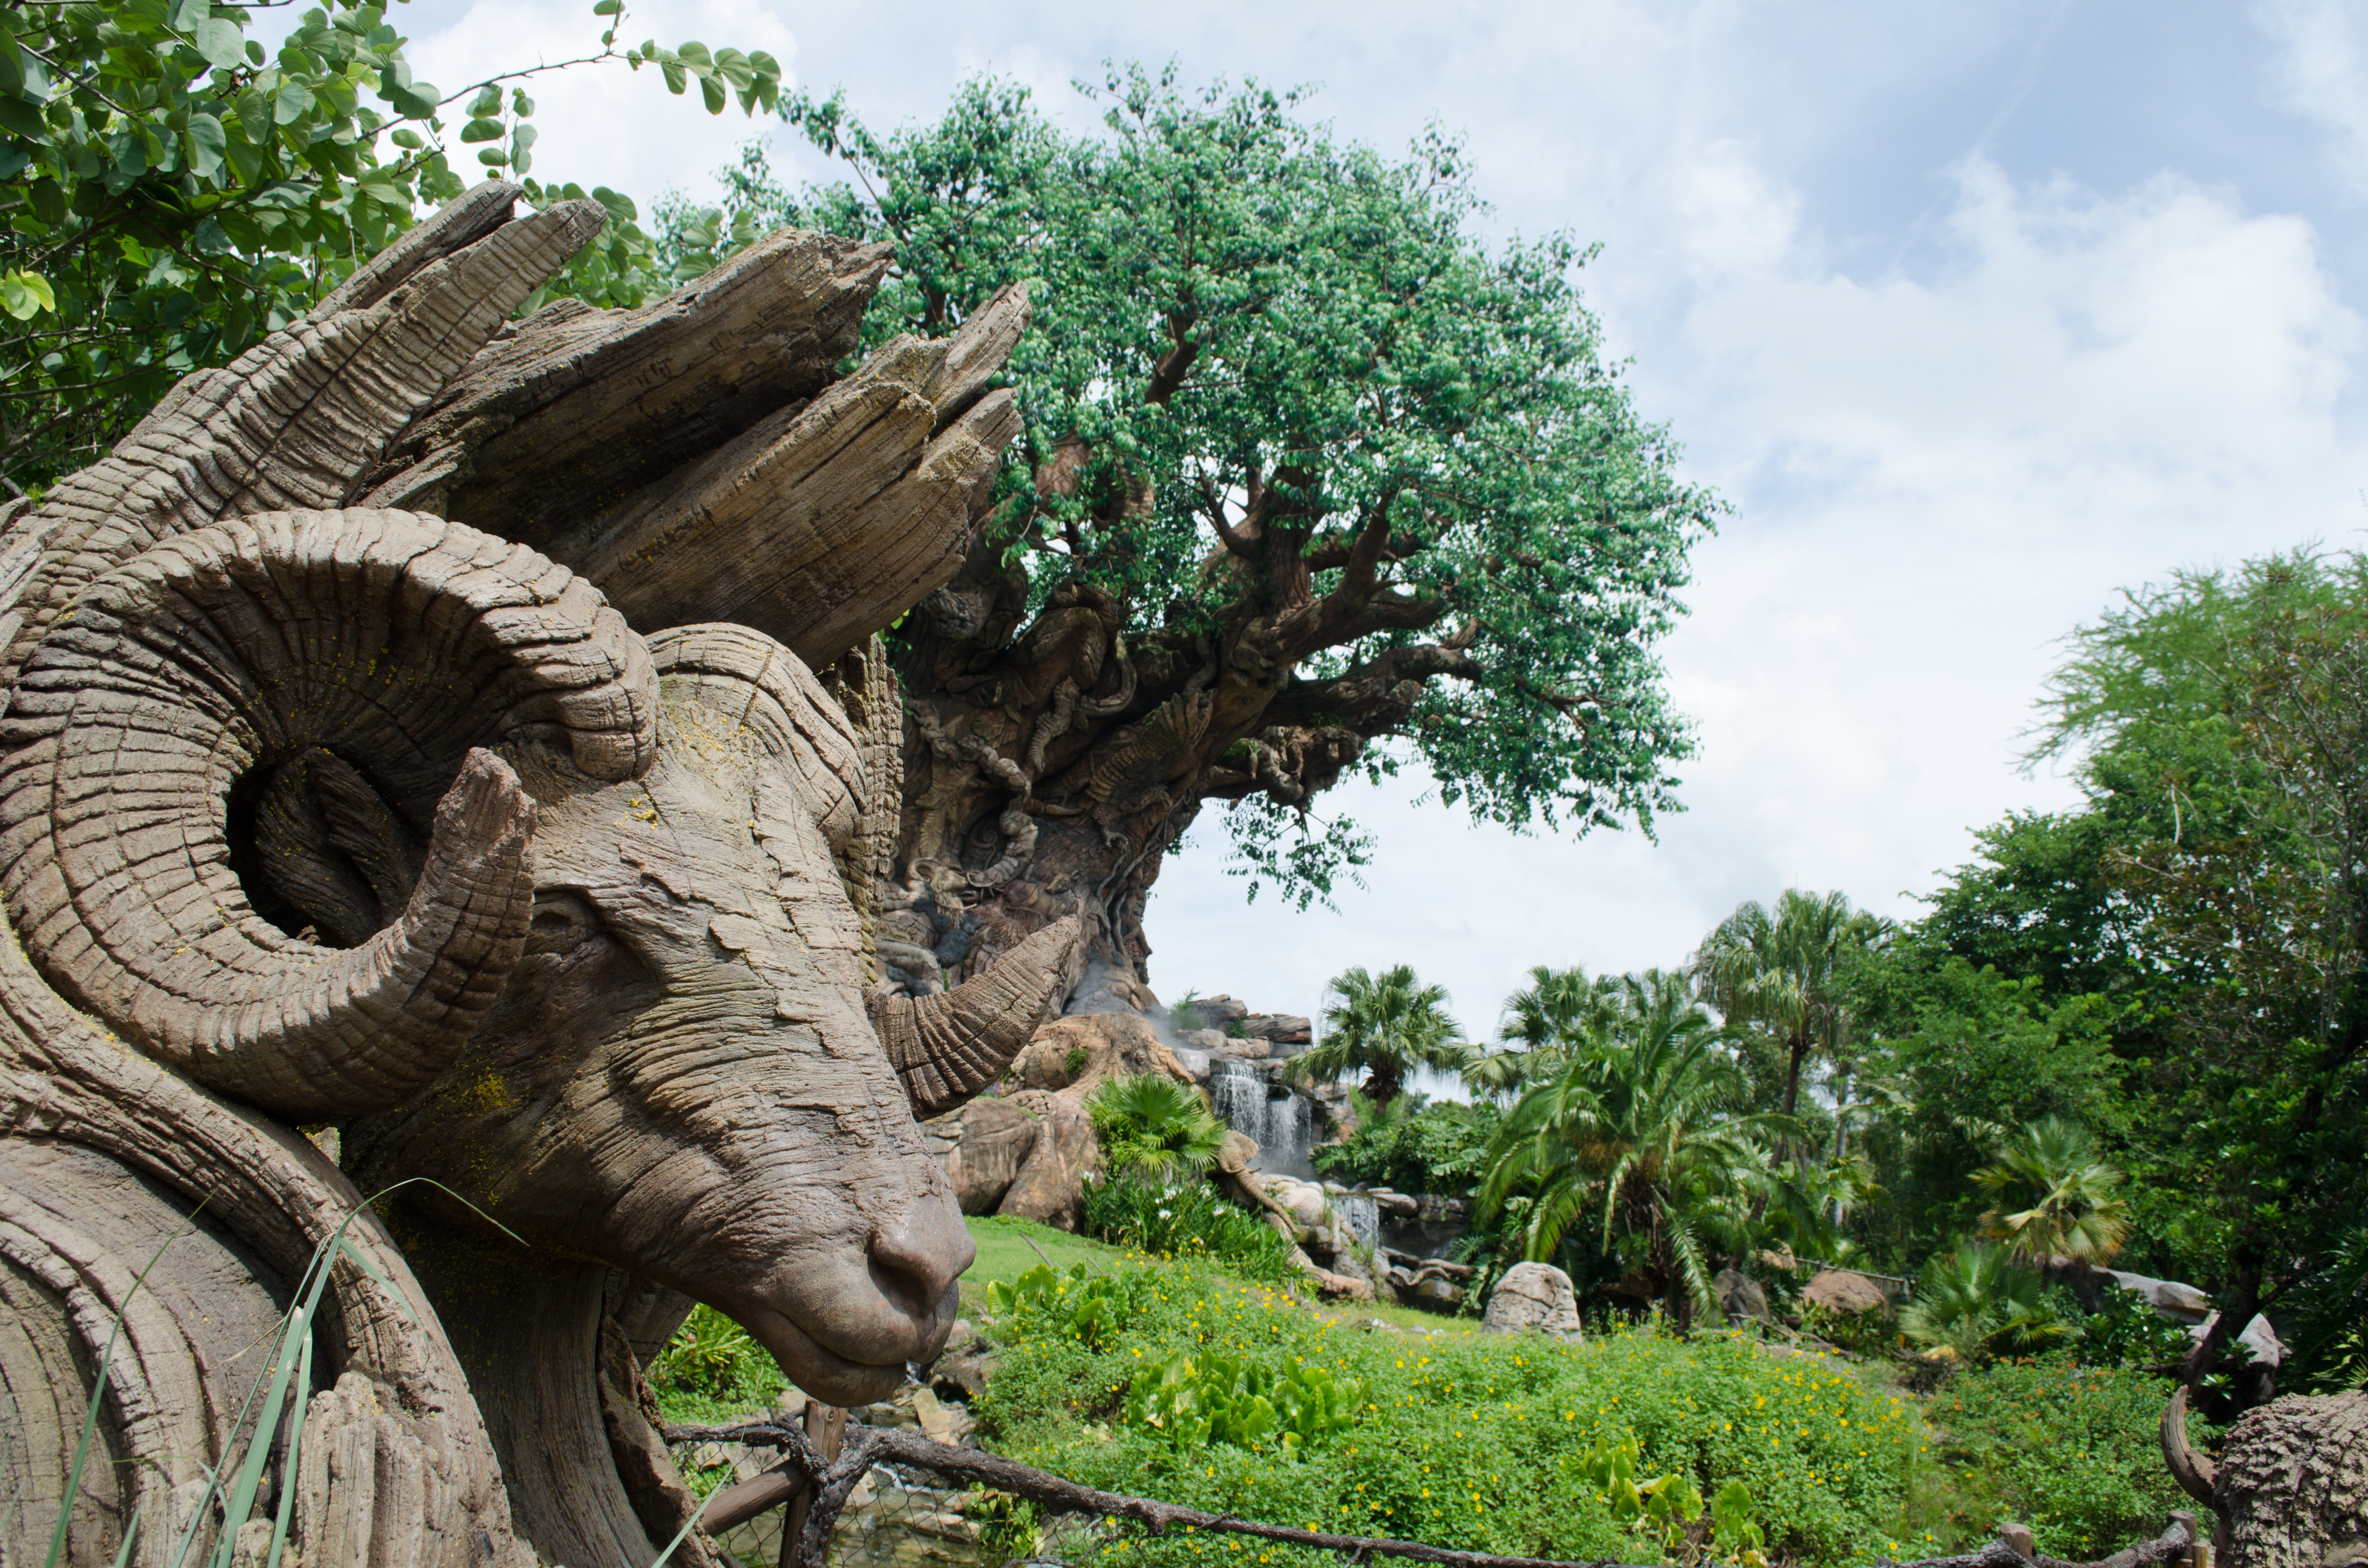 AnimalKingdom_08292015-5